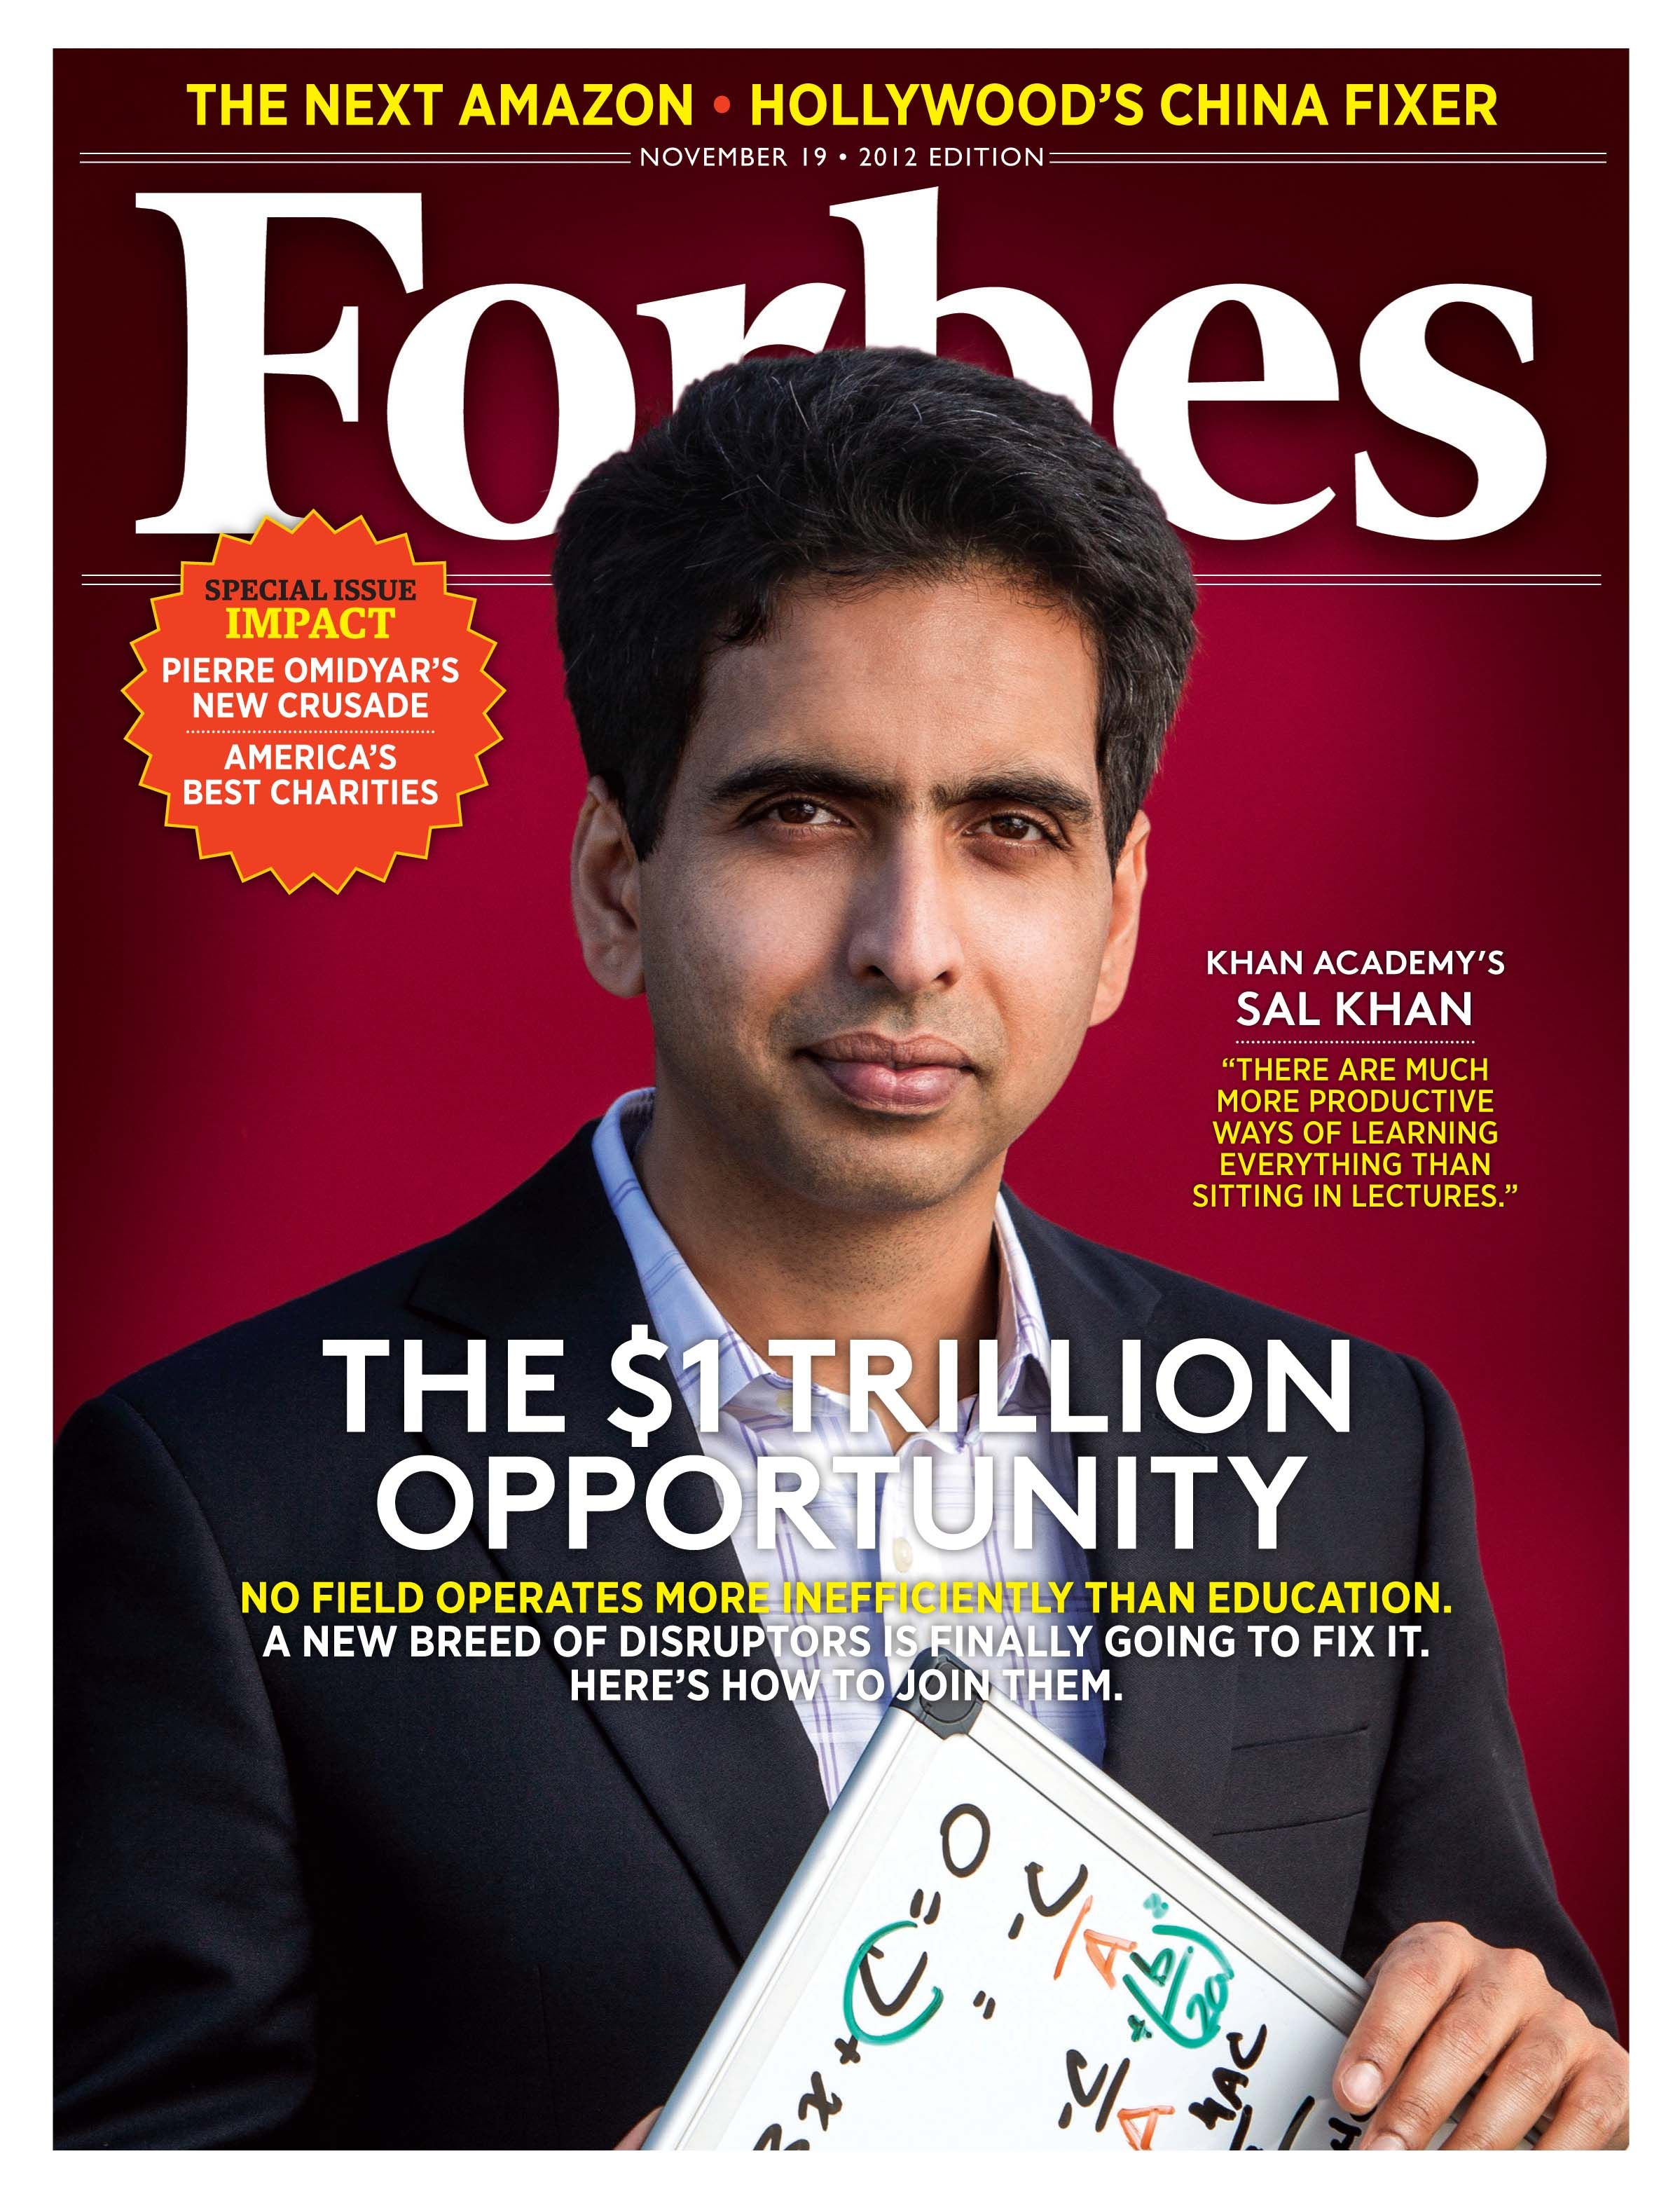 One Man One Computer 10 Million Students How Khan Academy Is Reinventing Education Khan Academy Online Education Online Learning